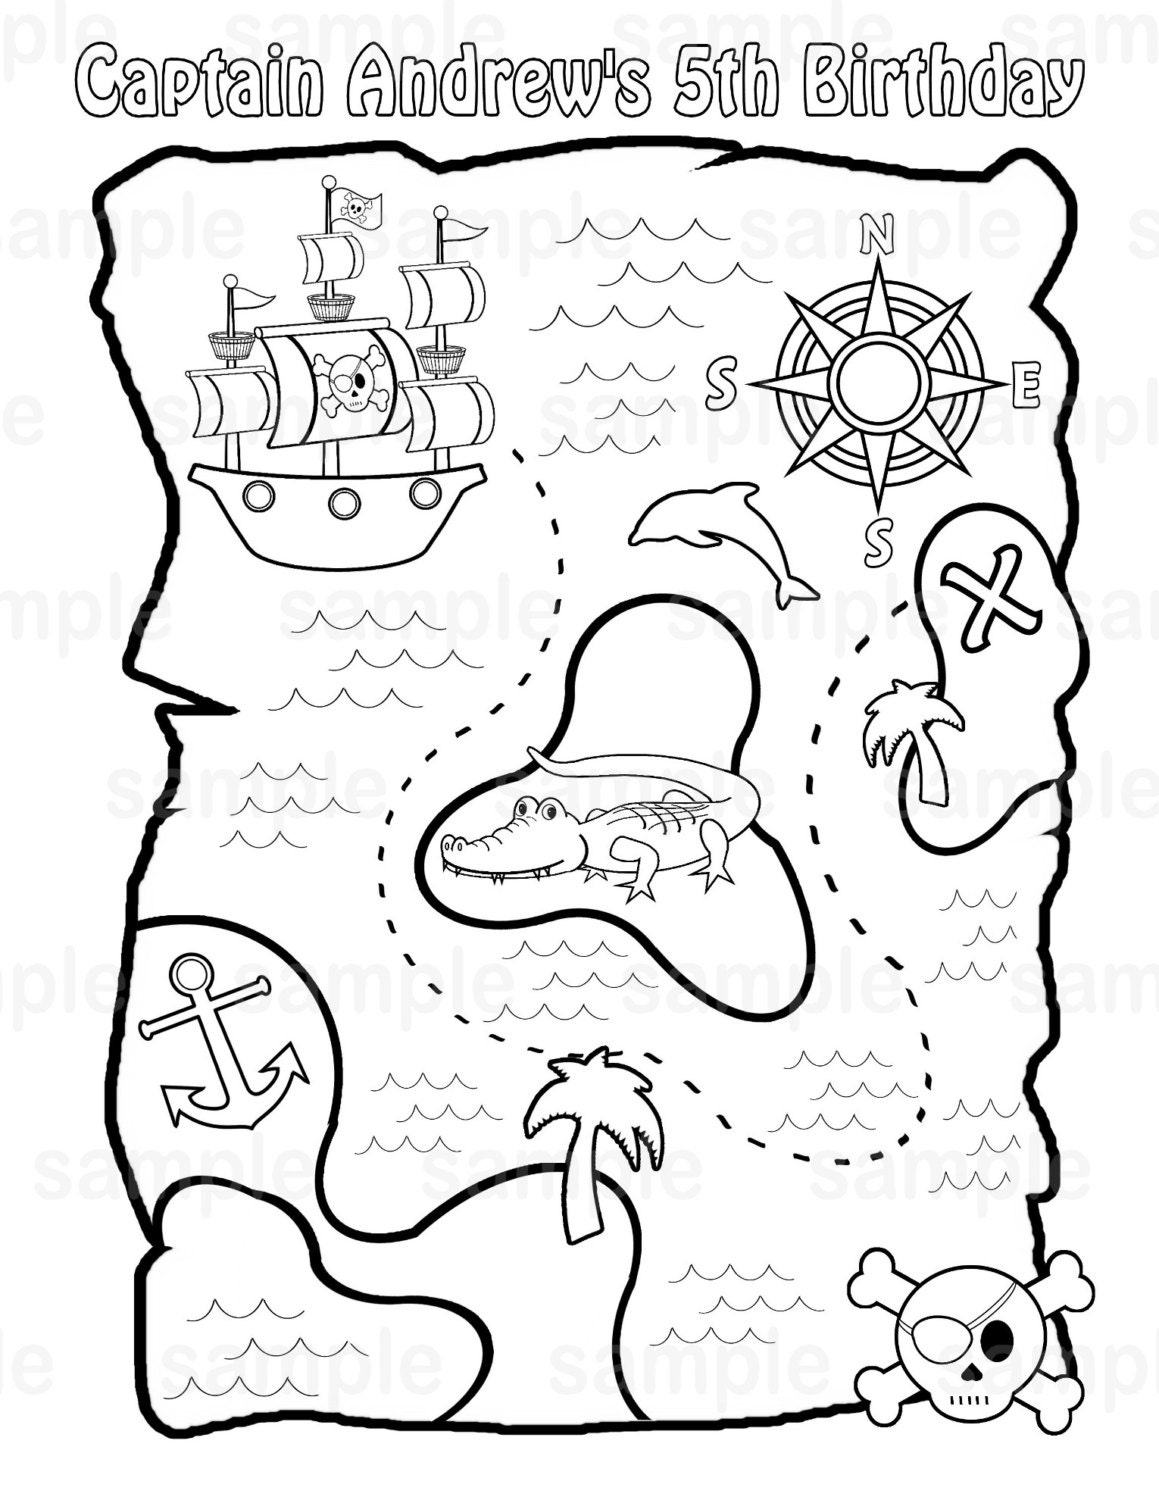 map coloring pages.  zoom Personalized Printable Pirate Treasure Map Birthday Party